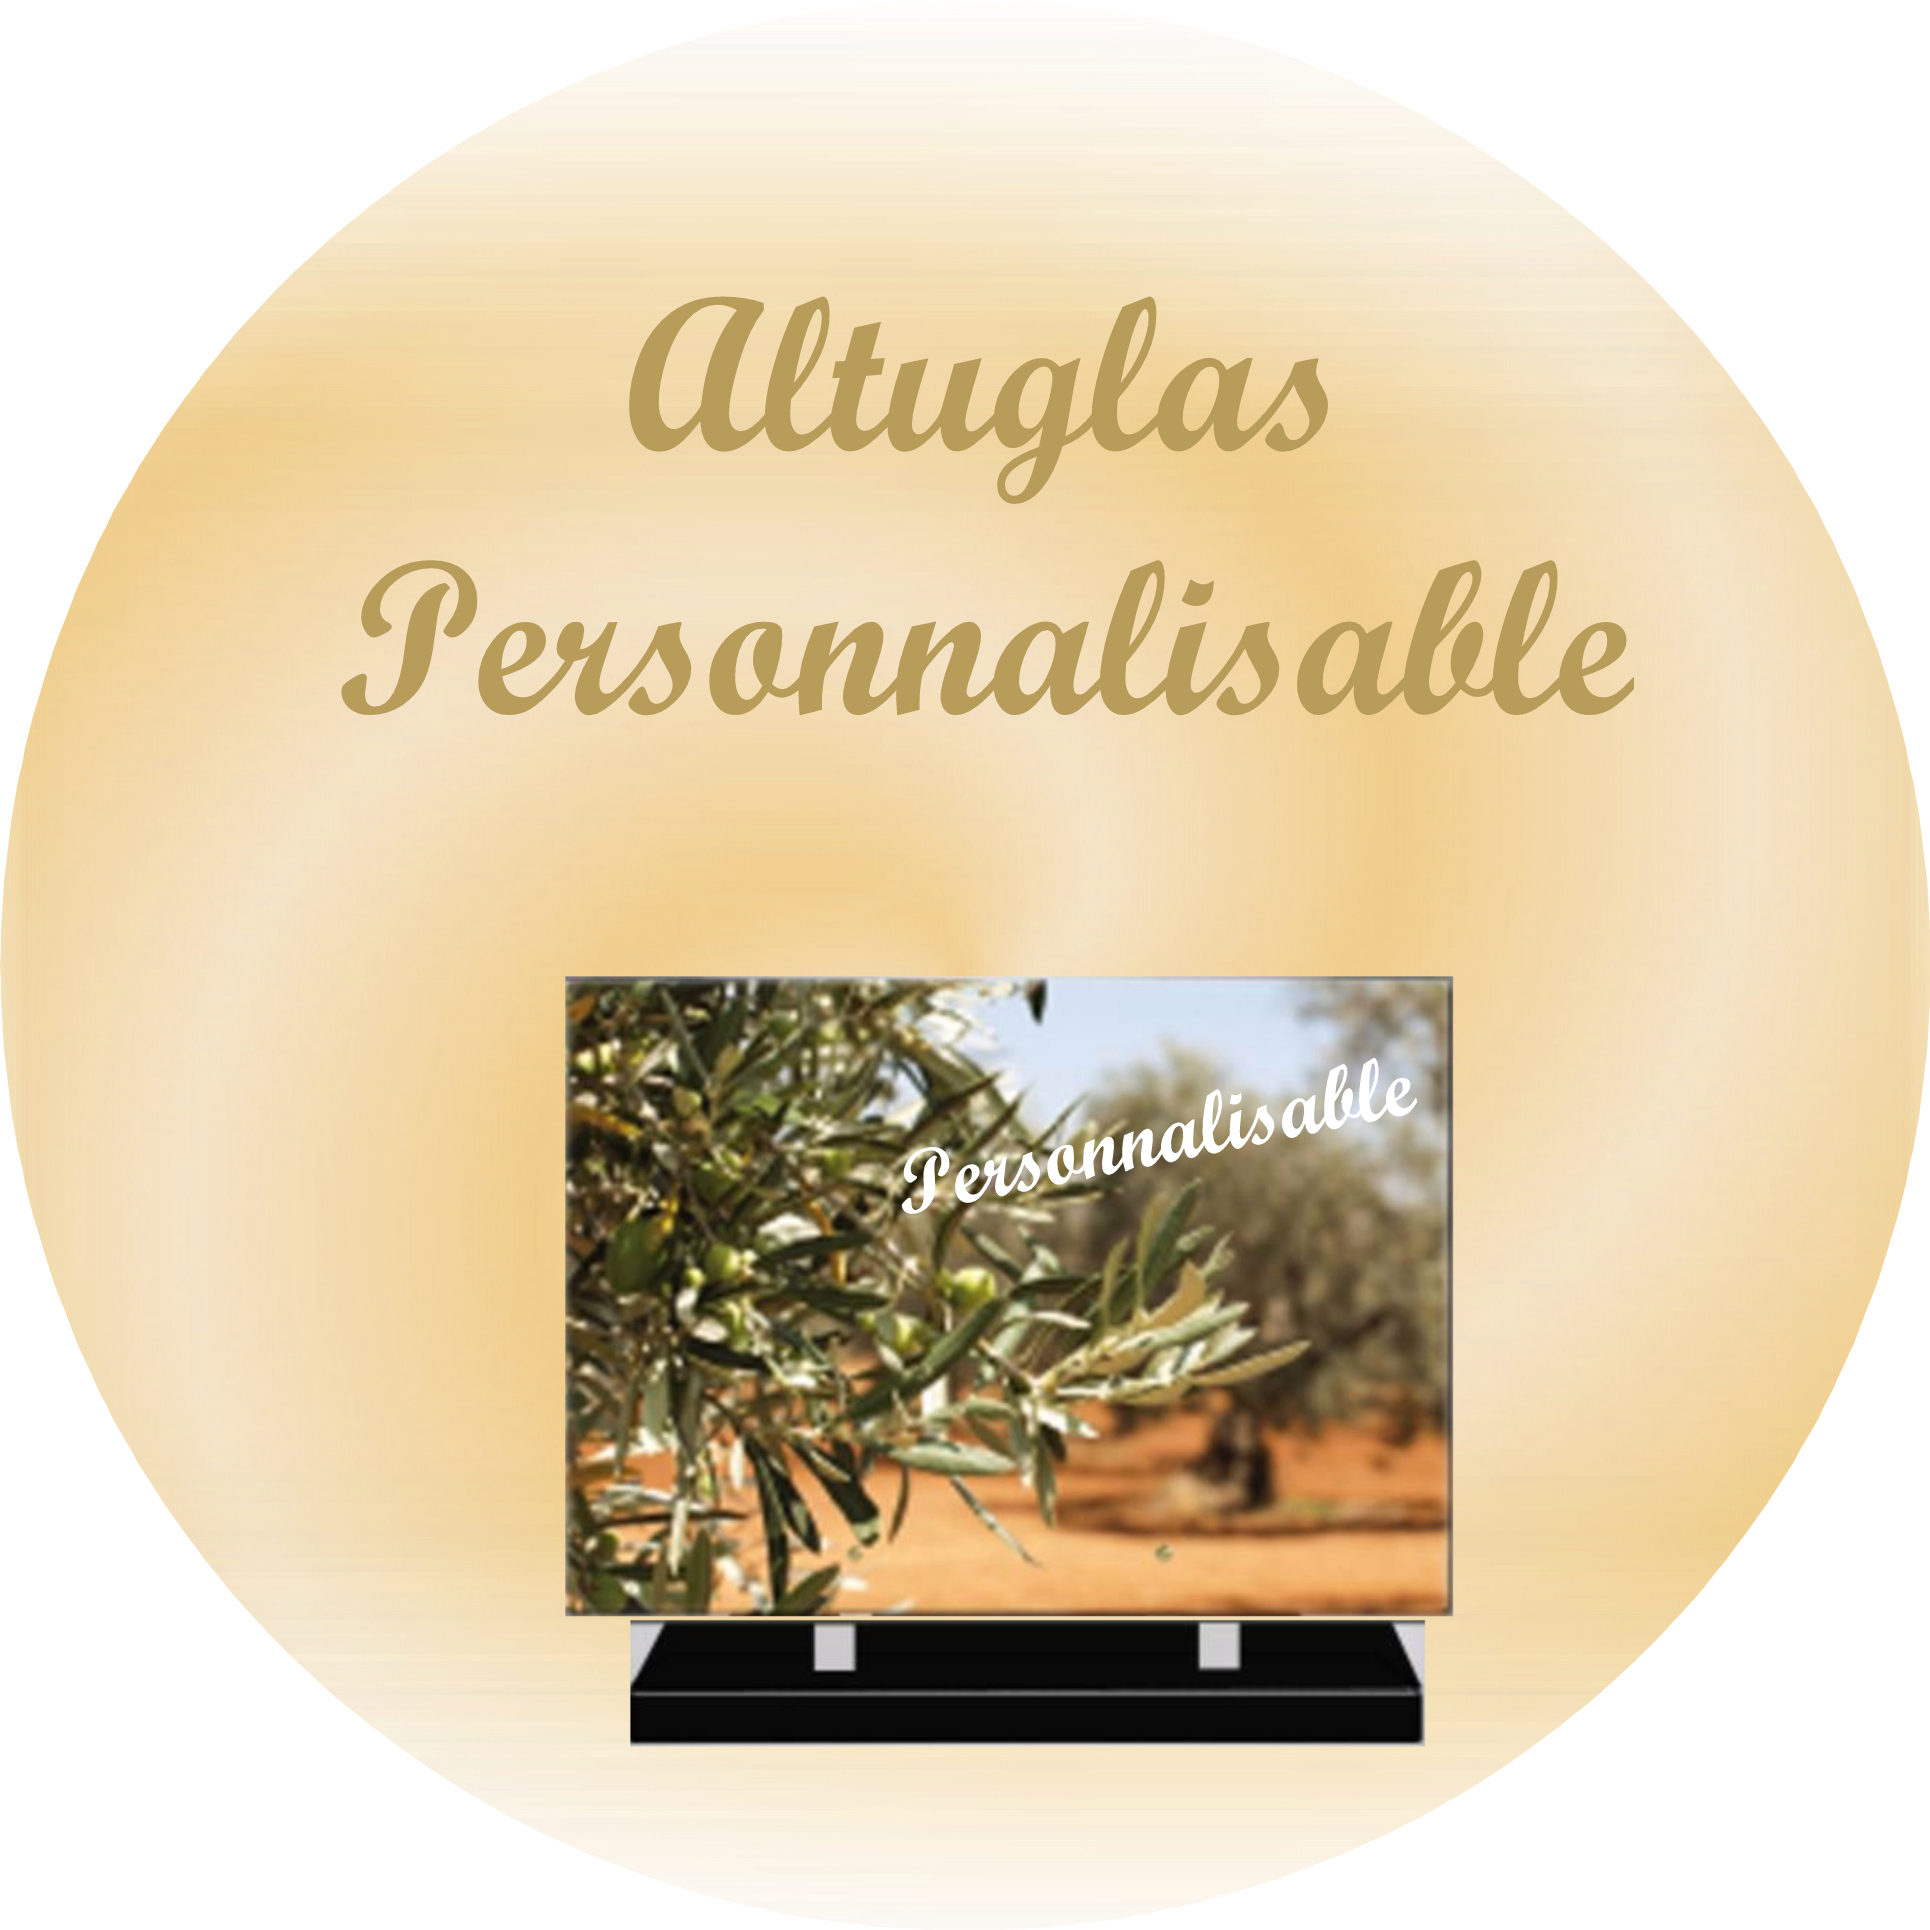 PLAQUES FUNERAIRES MODERNES PERSONNALISABLES RECTANGLE TICHEVILLE